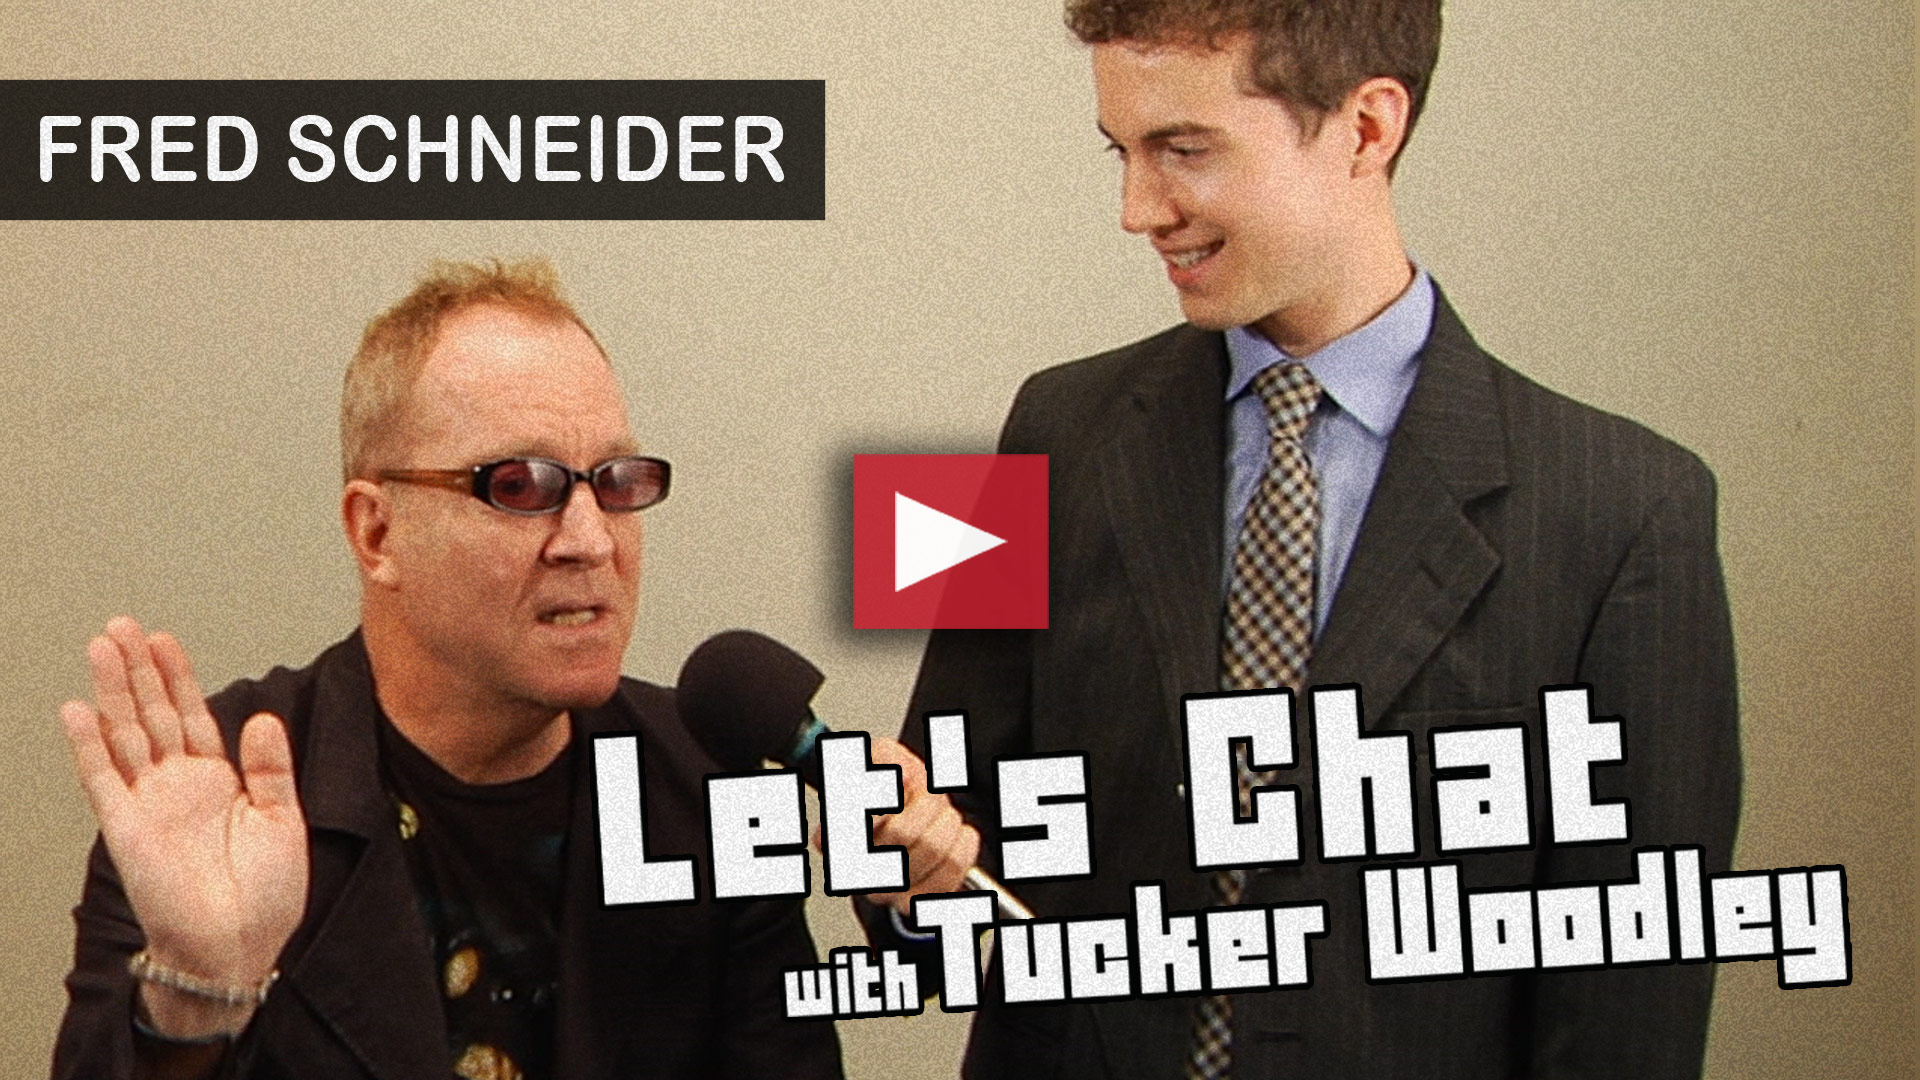 Fred Schneider on Let's Chat with Tucker Woodley